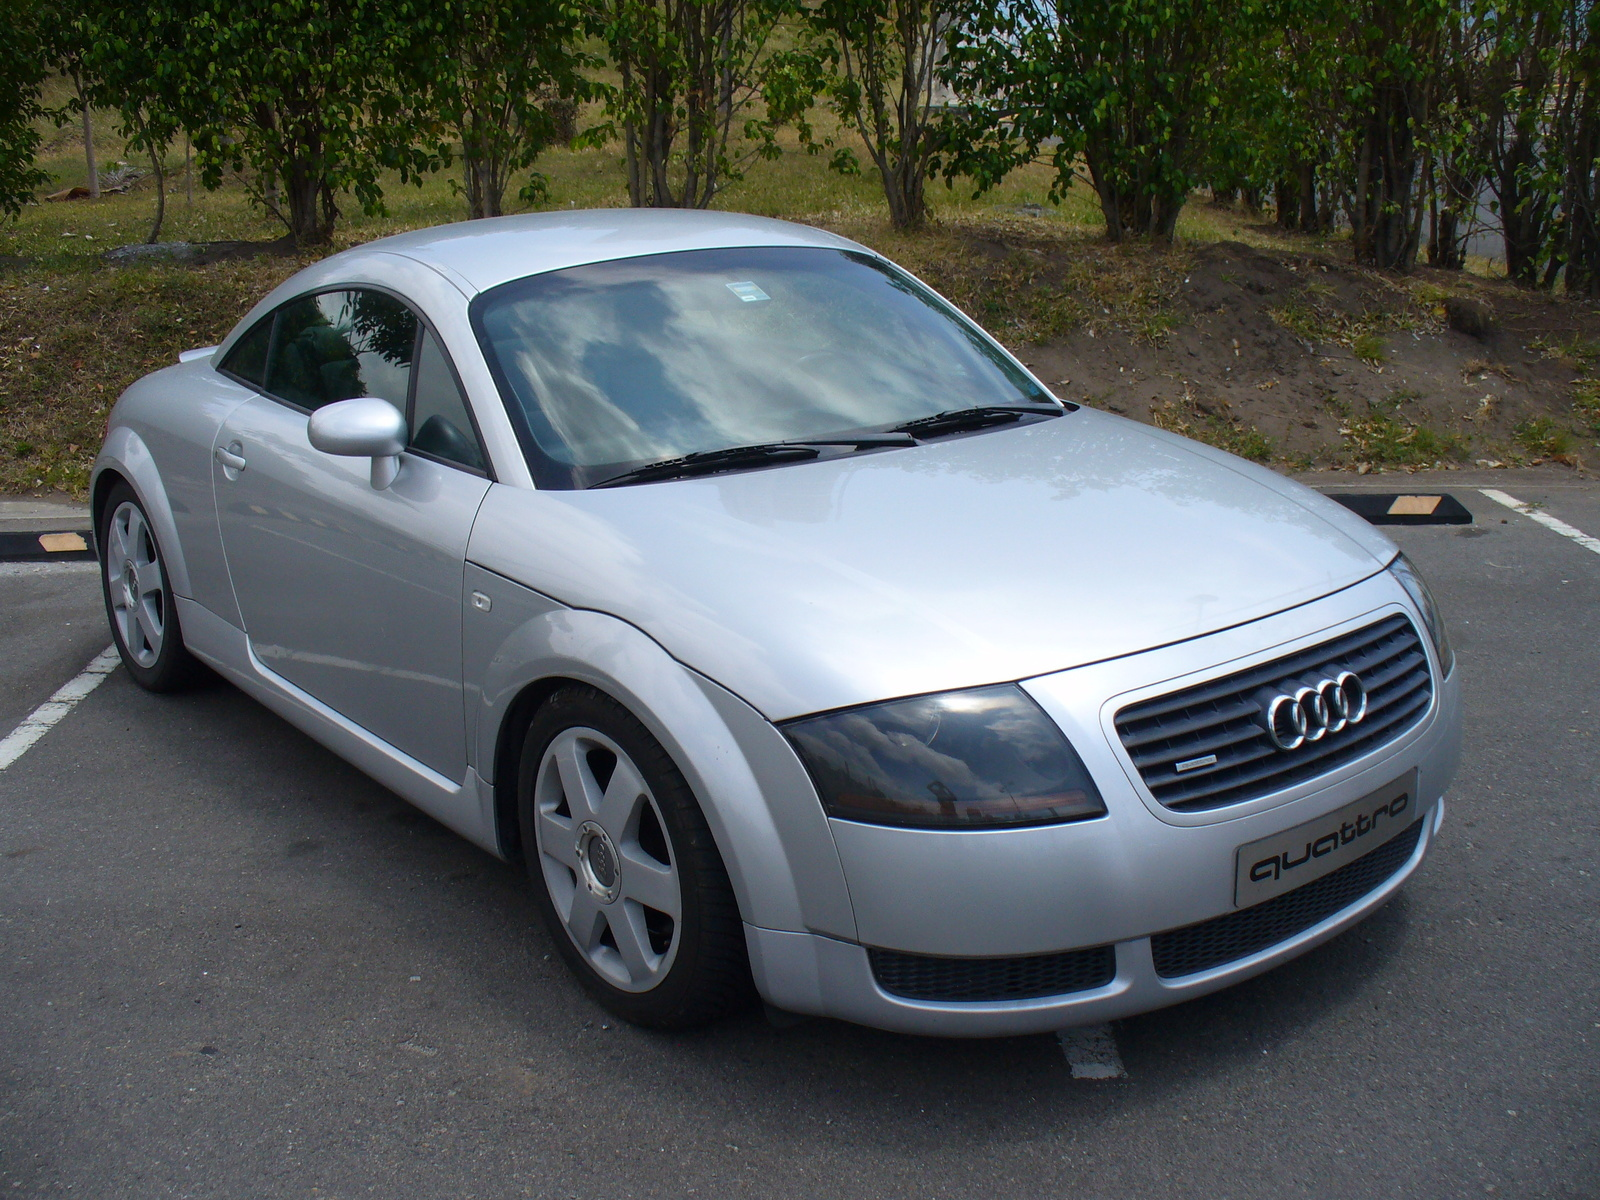 Used audi a3 quattro sline for sale 14